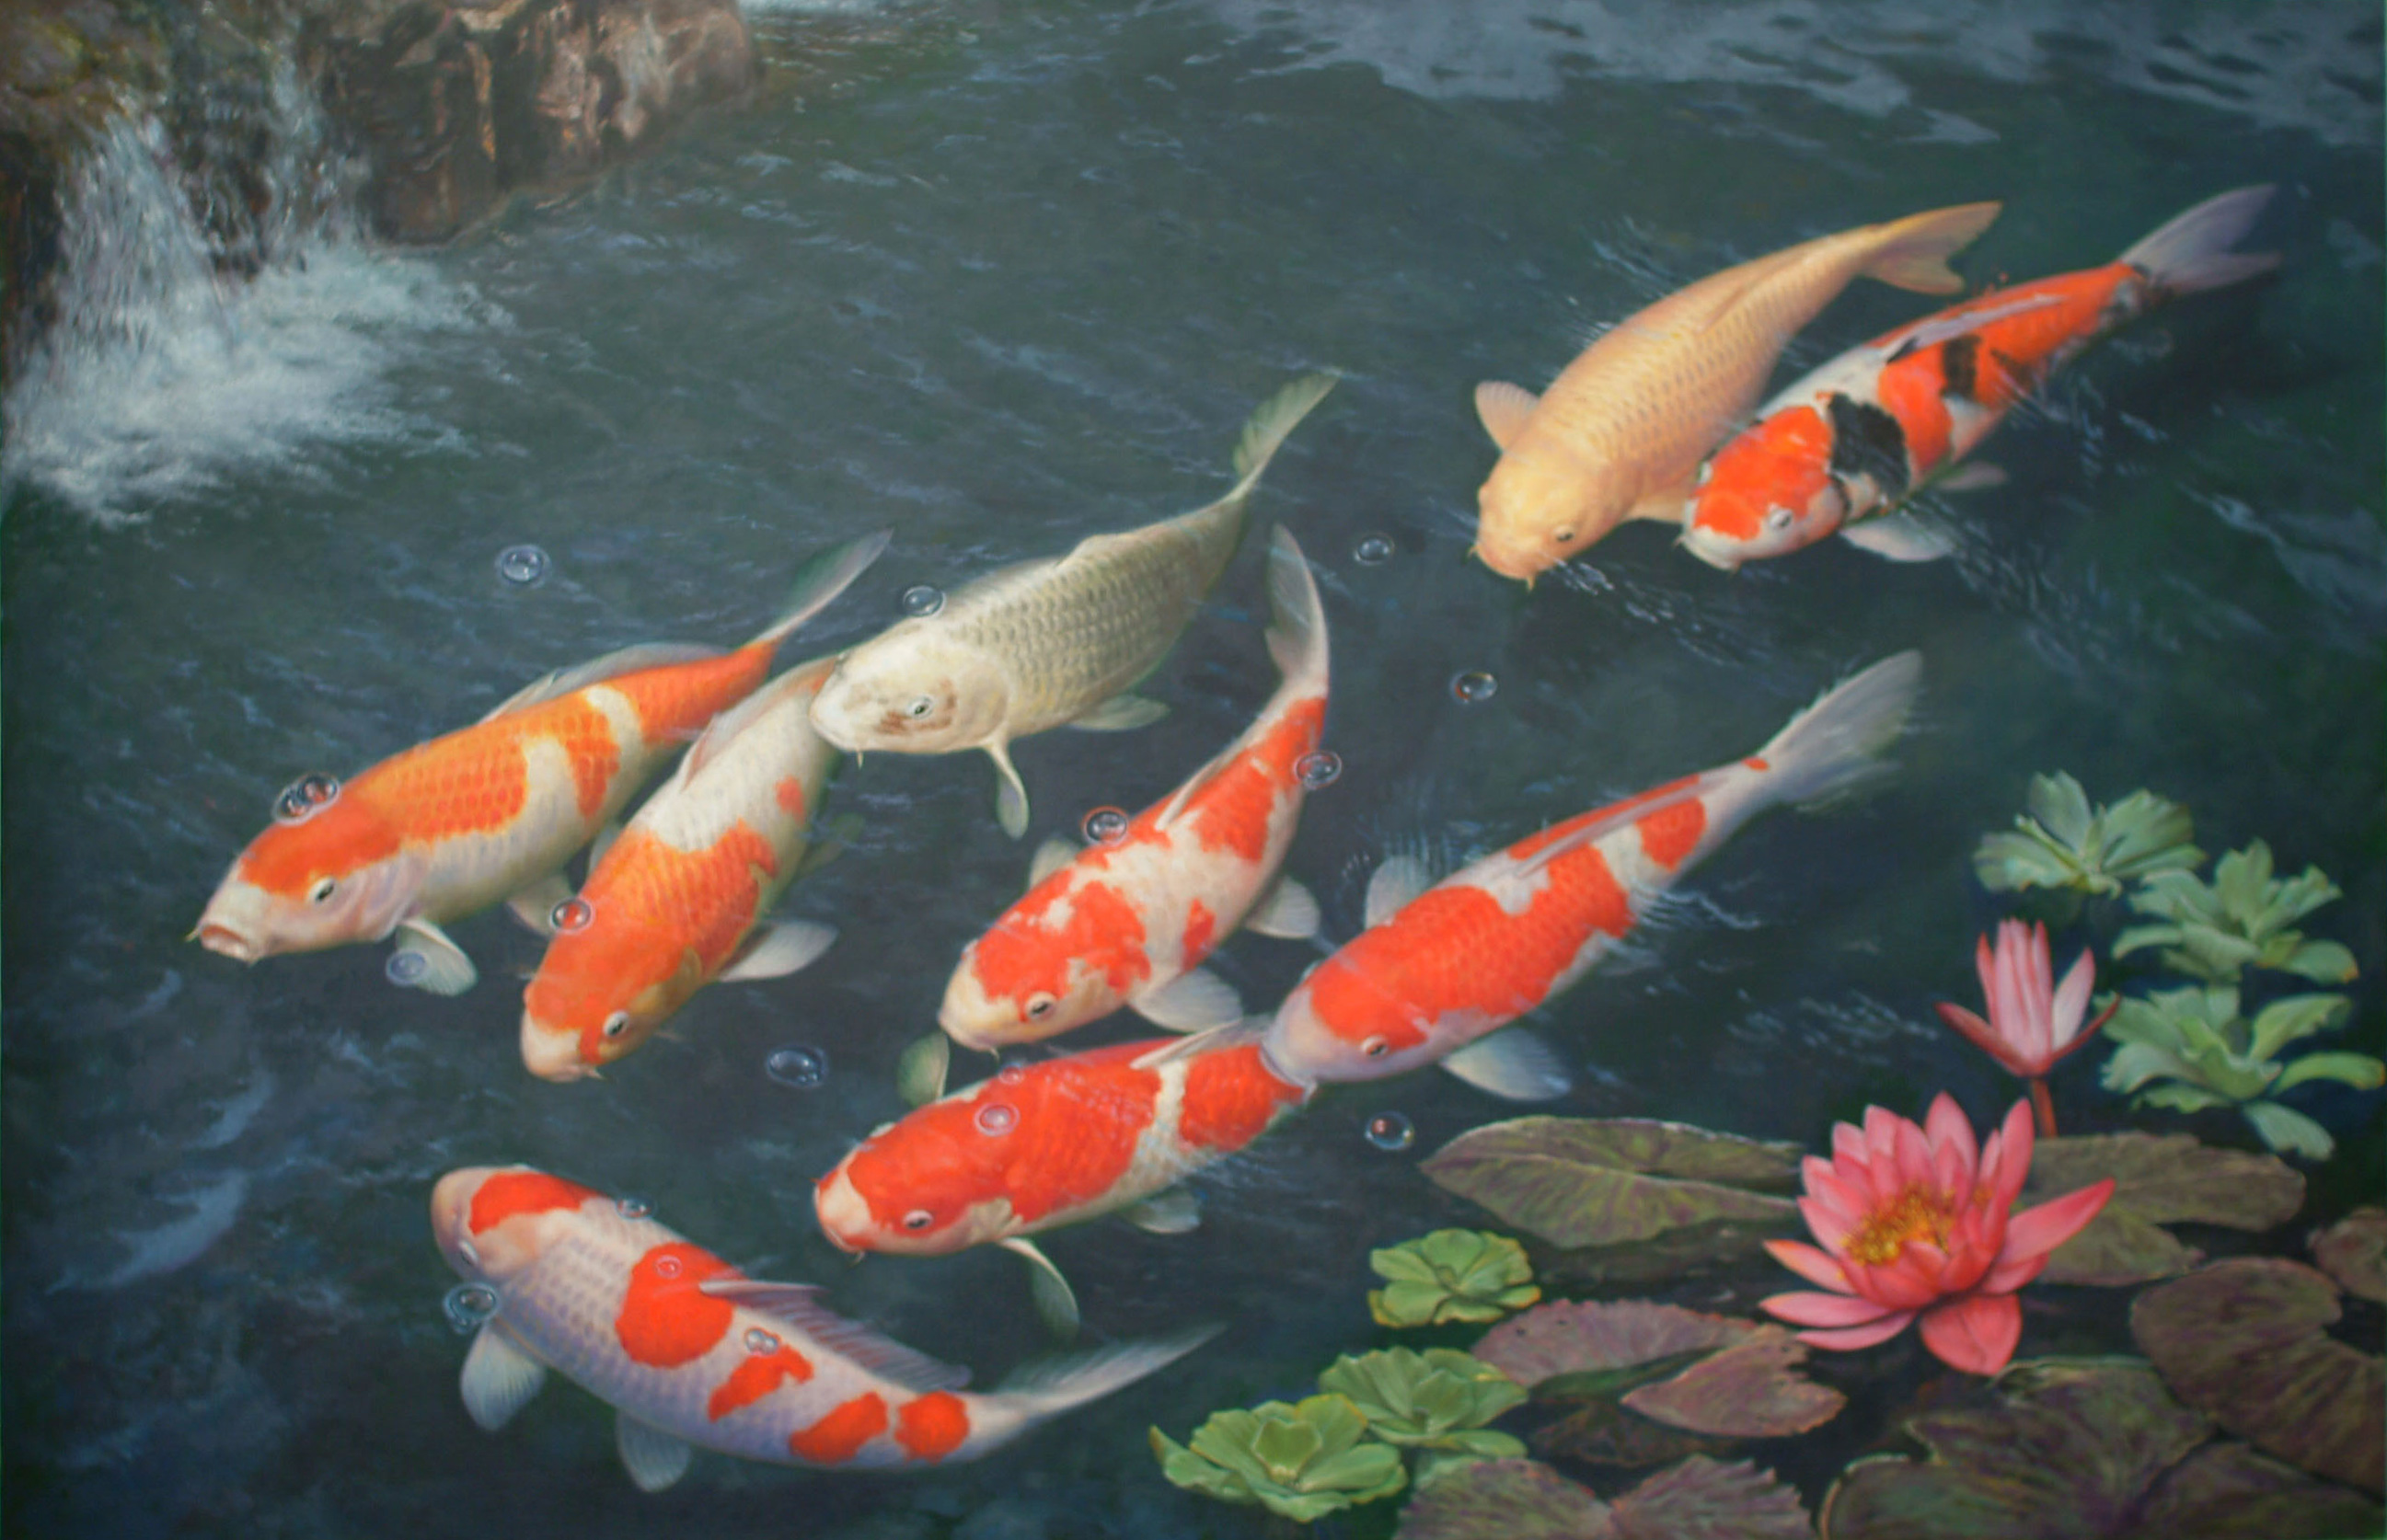 Koi fish wallpaper wallpapersafari for What is a koi fish